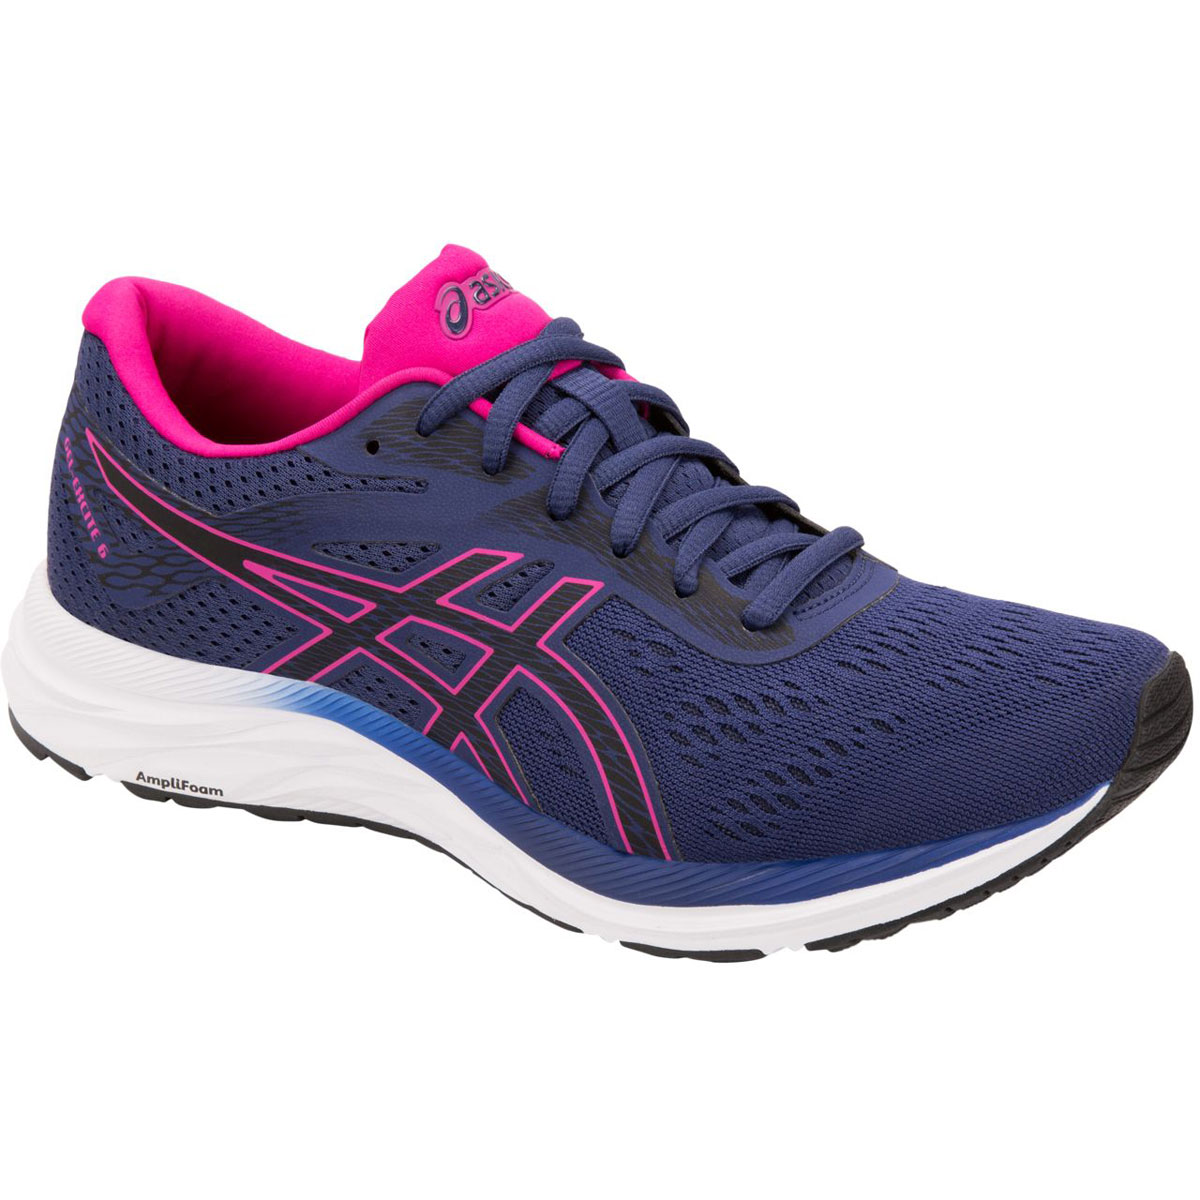 Asics Women's Gel-Excite 6 Running Shoes - Blue, 9